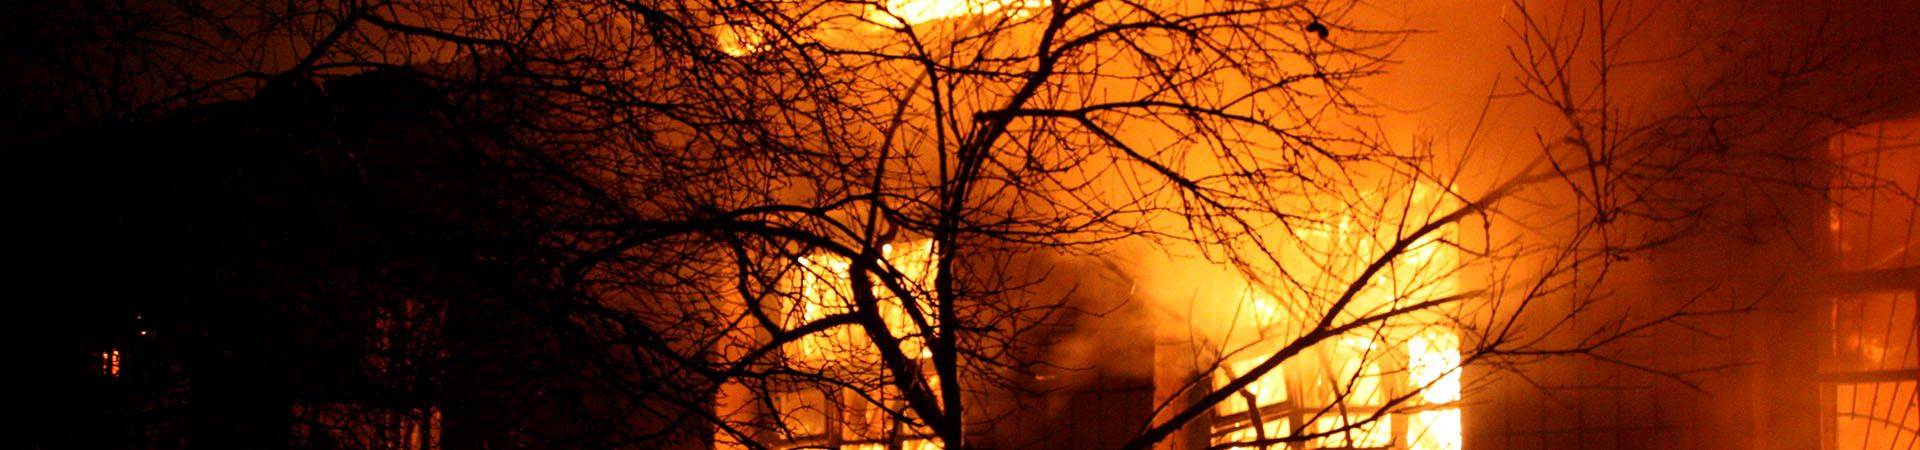 Fire Damage Restoration in Chicago, Des Plaines, Glenview, Northbrook